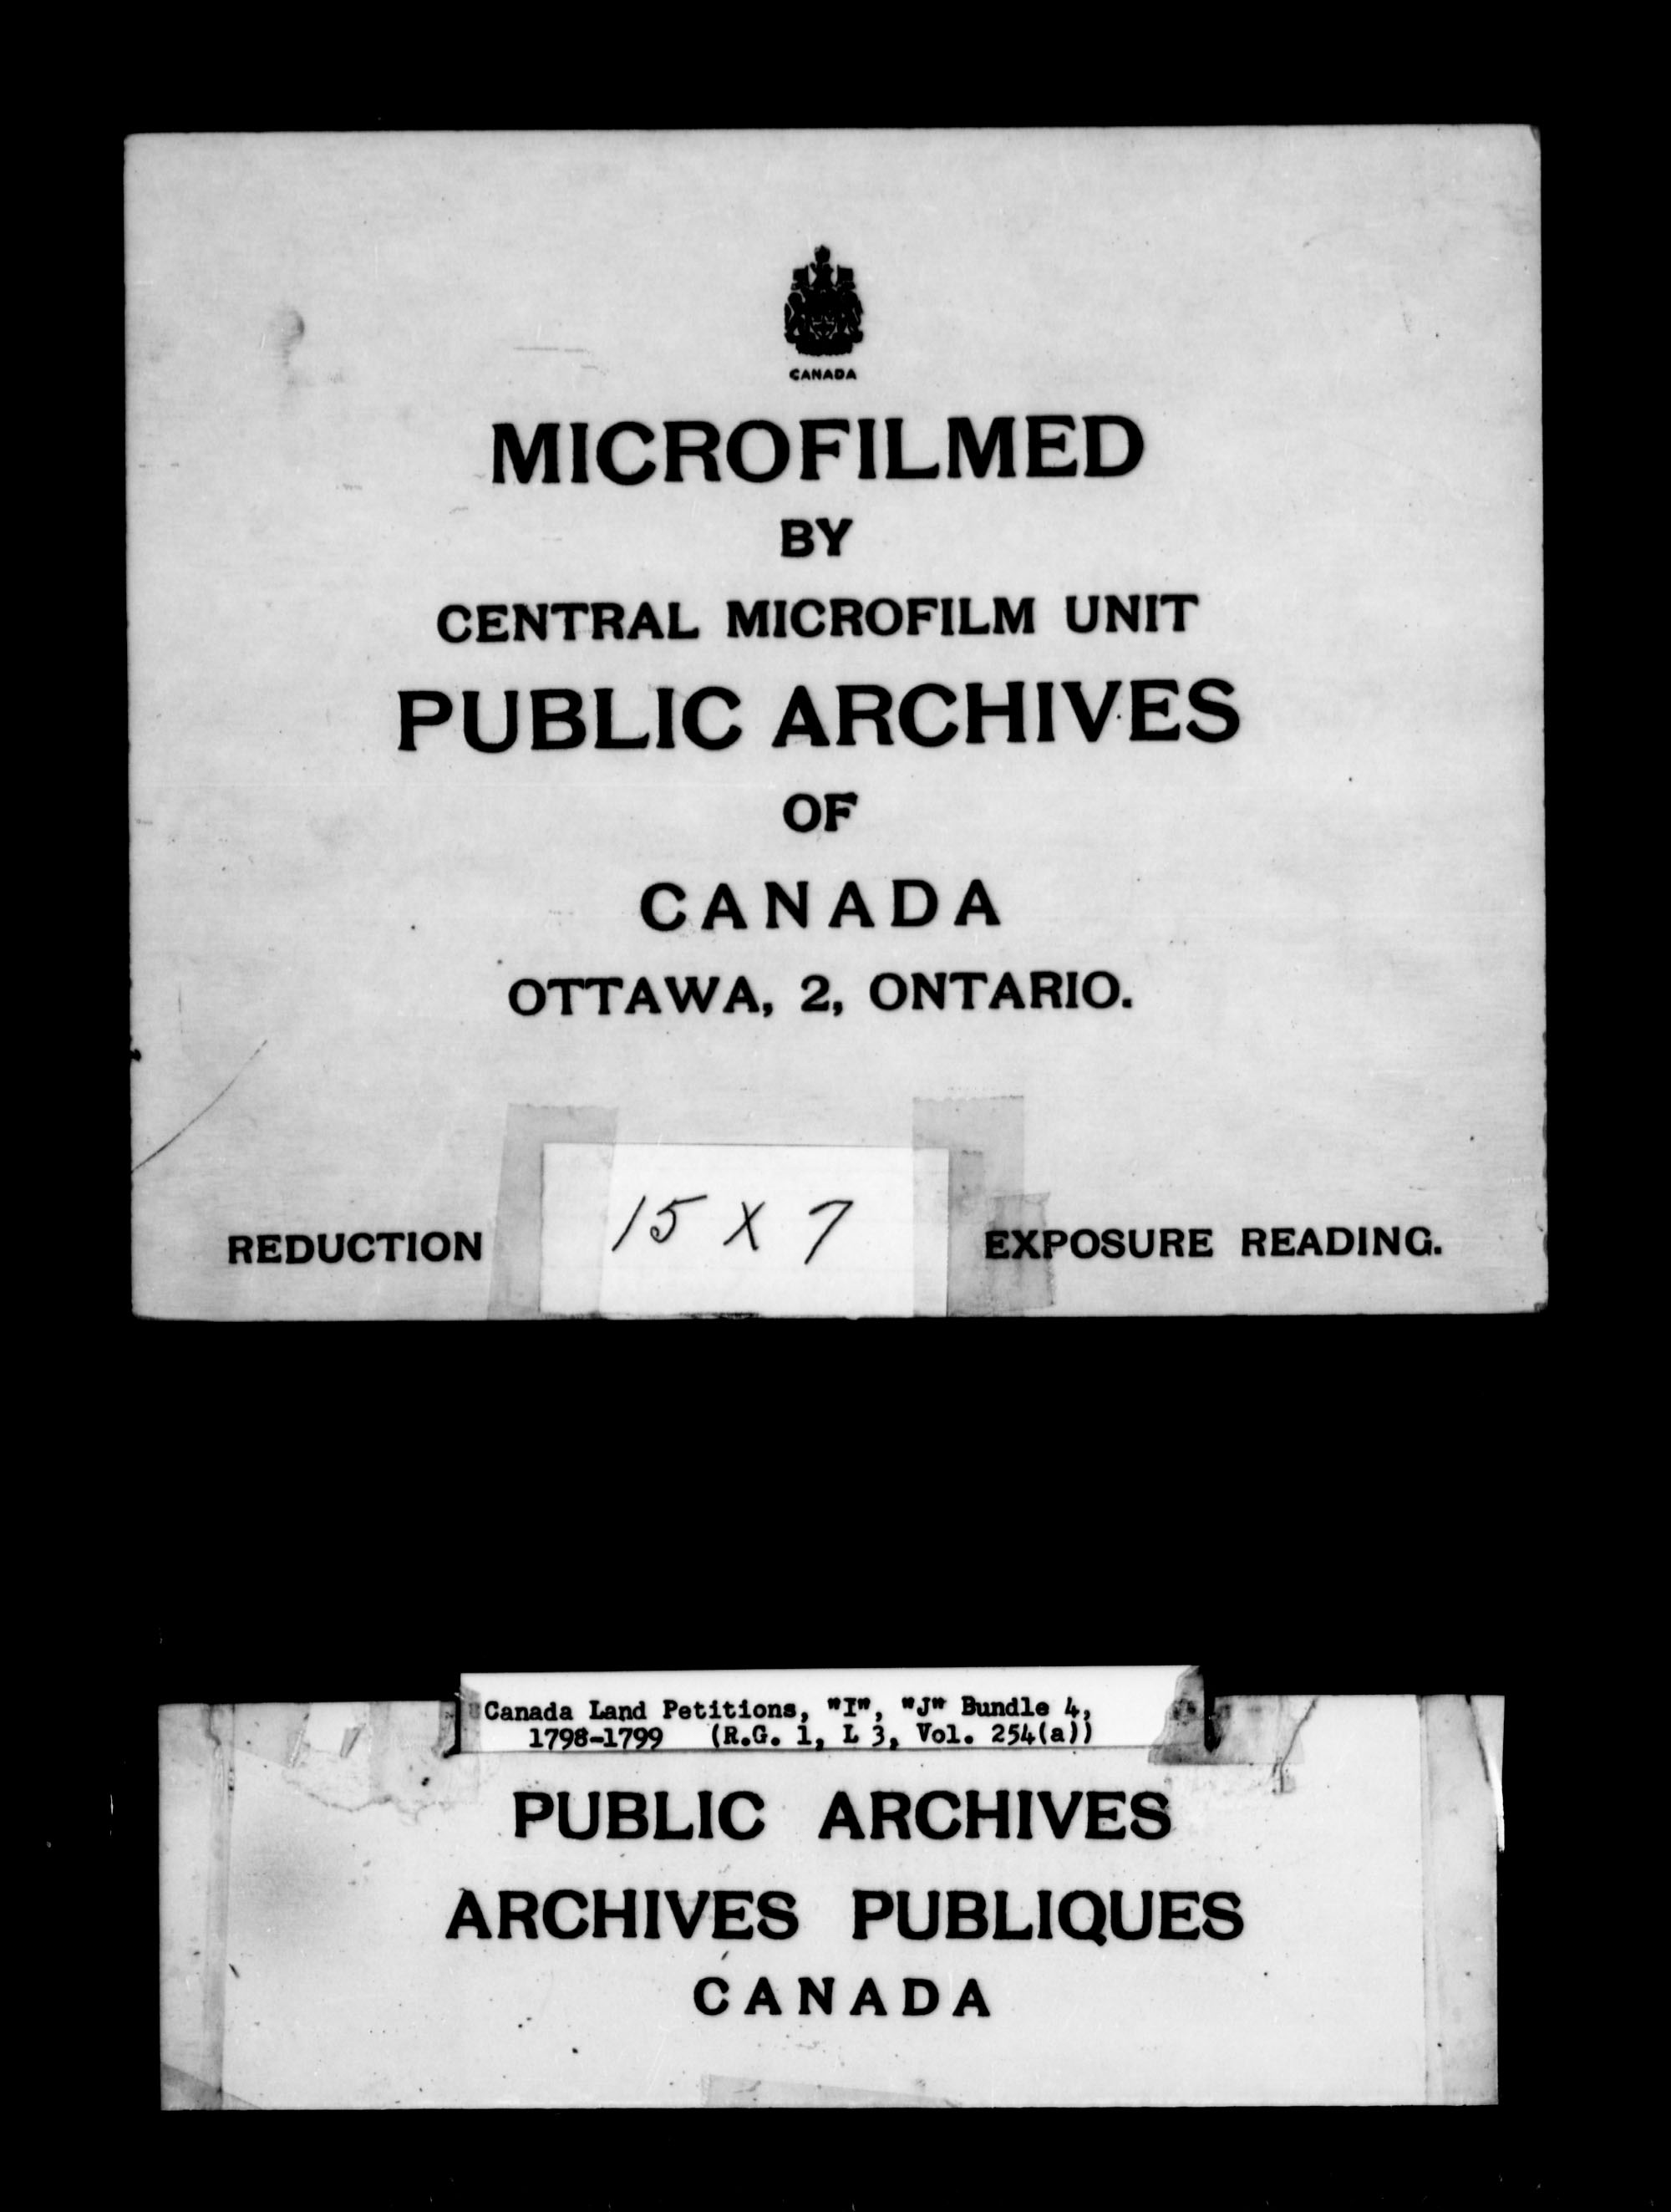 Title: Upper Canada Land Petitions (1763-1865) - Mikan Number: 205131 - Microform: c-2109